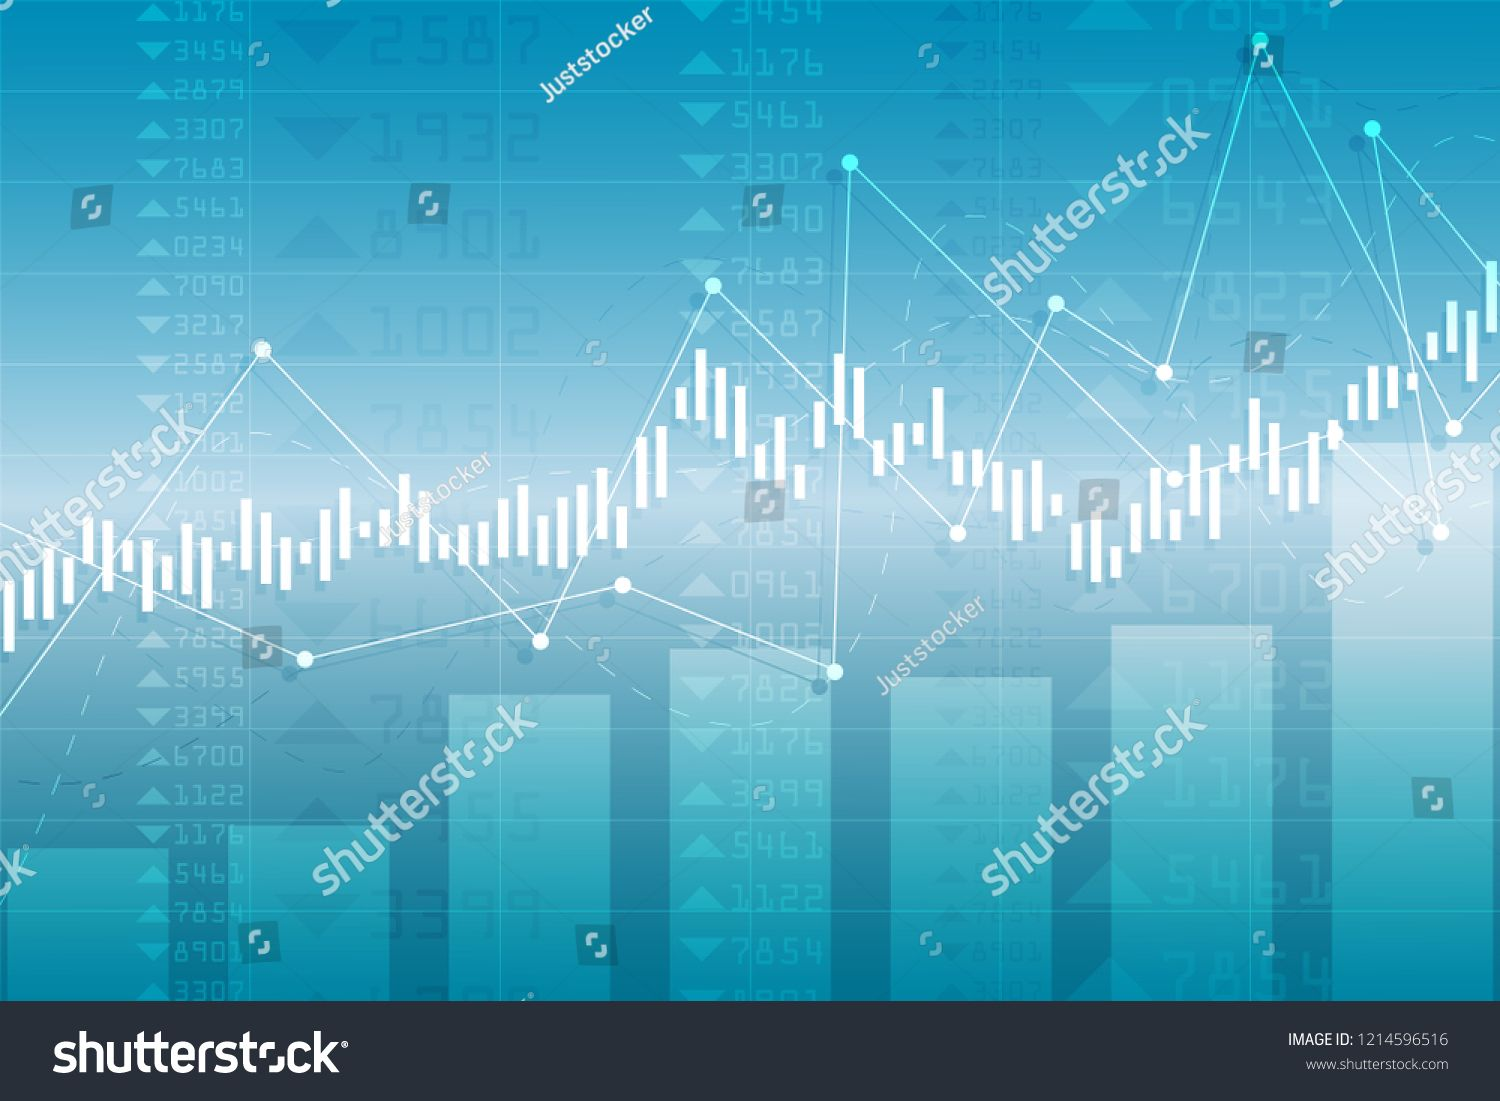 Business Candle Stick Graph Chart Of Stock Market Investment Trading On Background Design Stock Ma In 2020 Stock Market Graph Stock Market Investing Investment Quotes